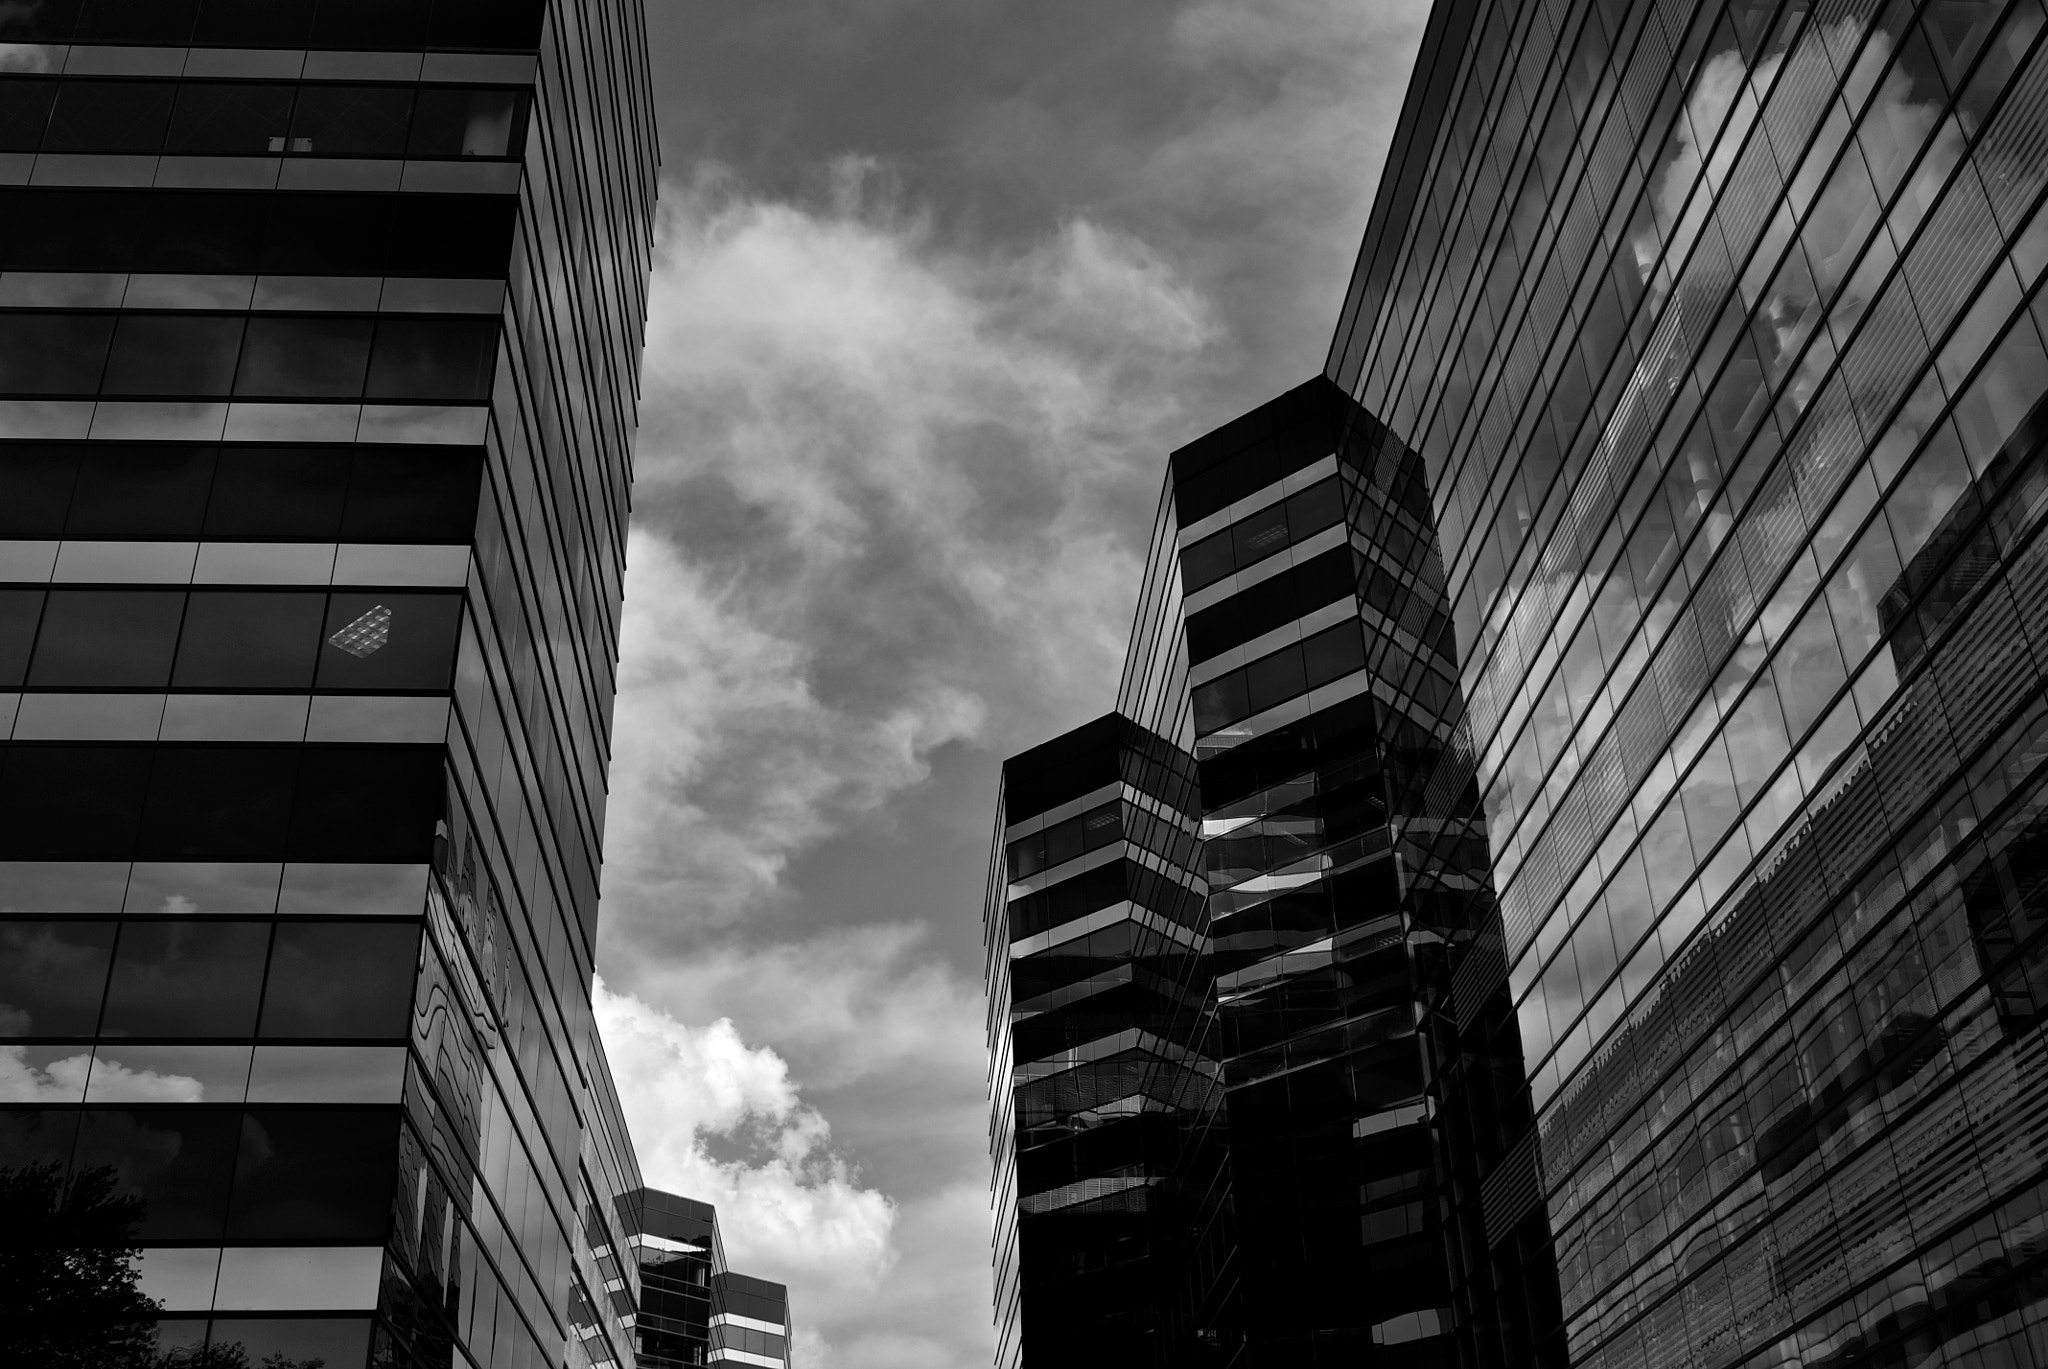 Photograph Angles and Clouds by Doug Hardman on 500px